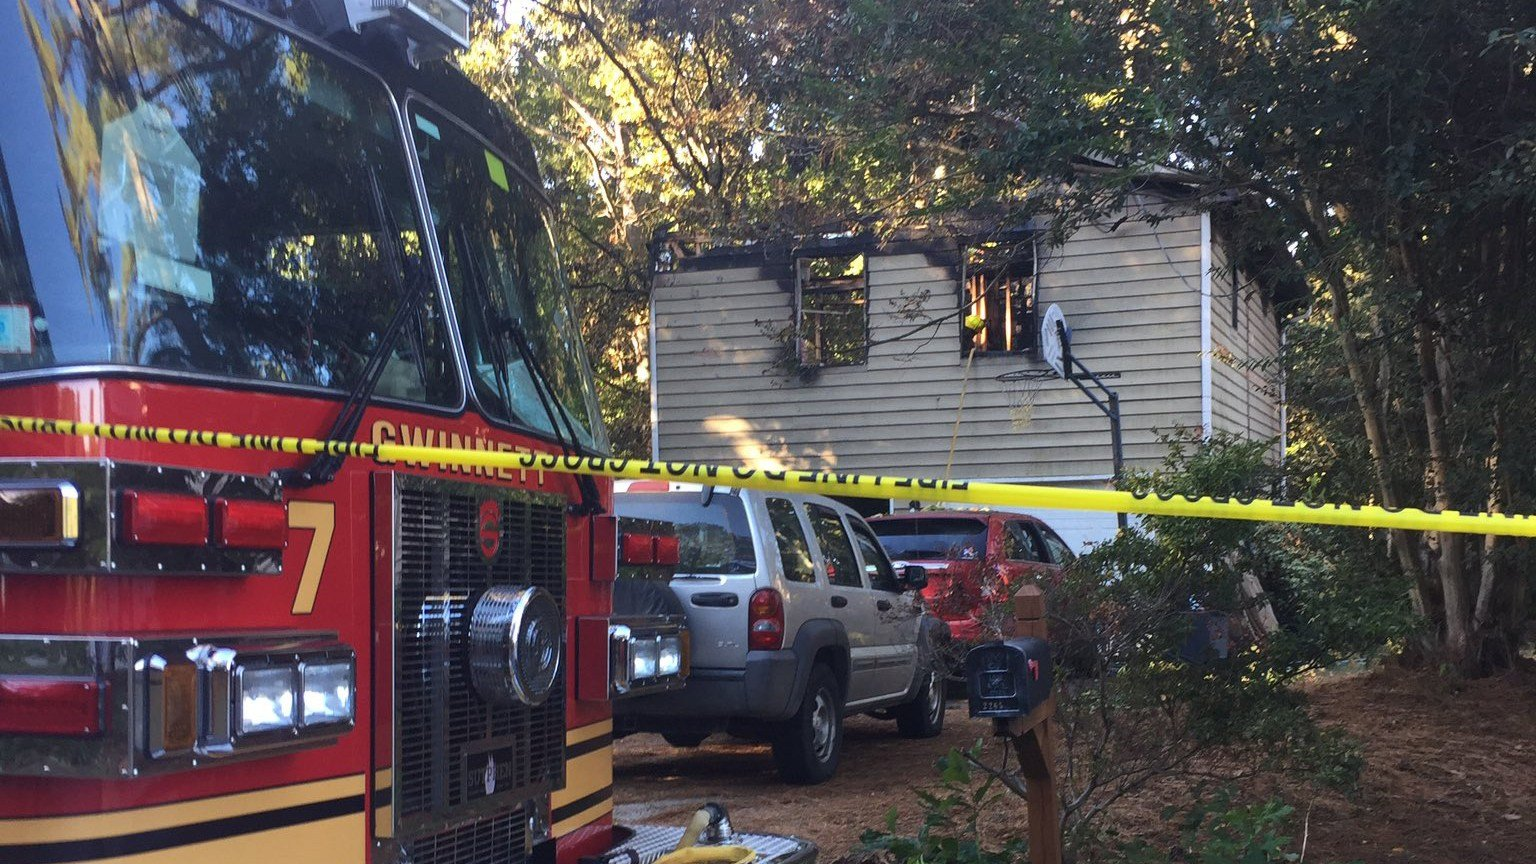 Five people died after an overnight house fire in Duluth on Sunday, Oct 23, 2016. (SOURCE: WGCL)